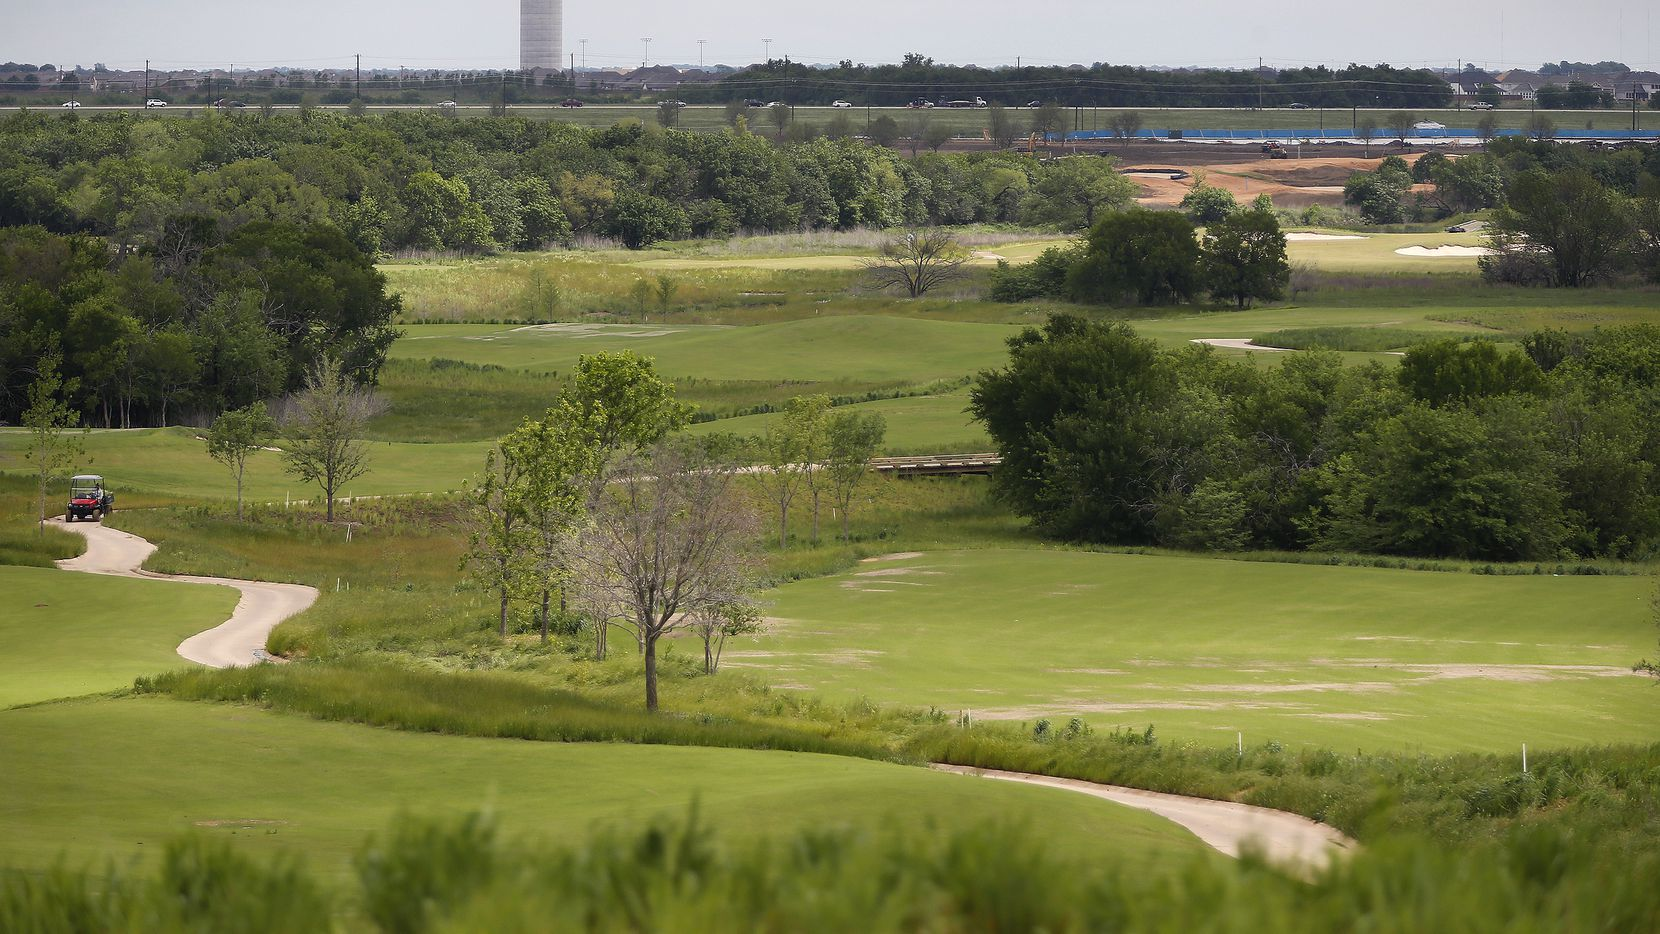 A view of the west course at the Omni PGA Frisco Resort on PGA Parkway in Frisco on Tuesday, May 4, 2021